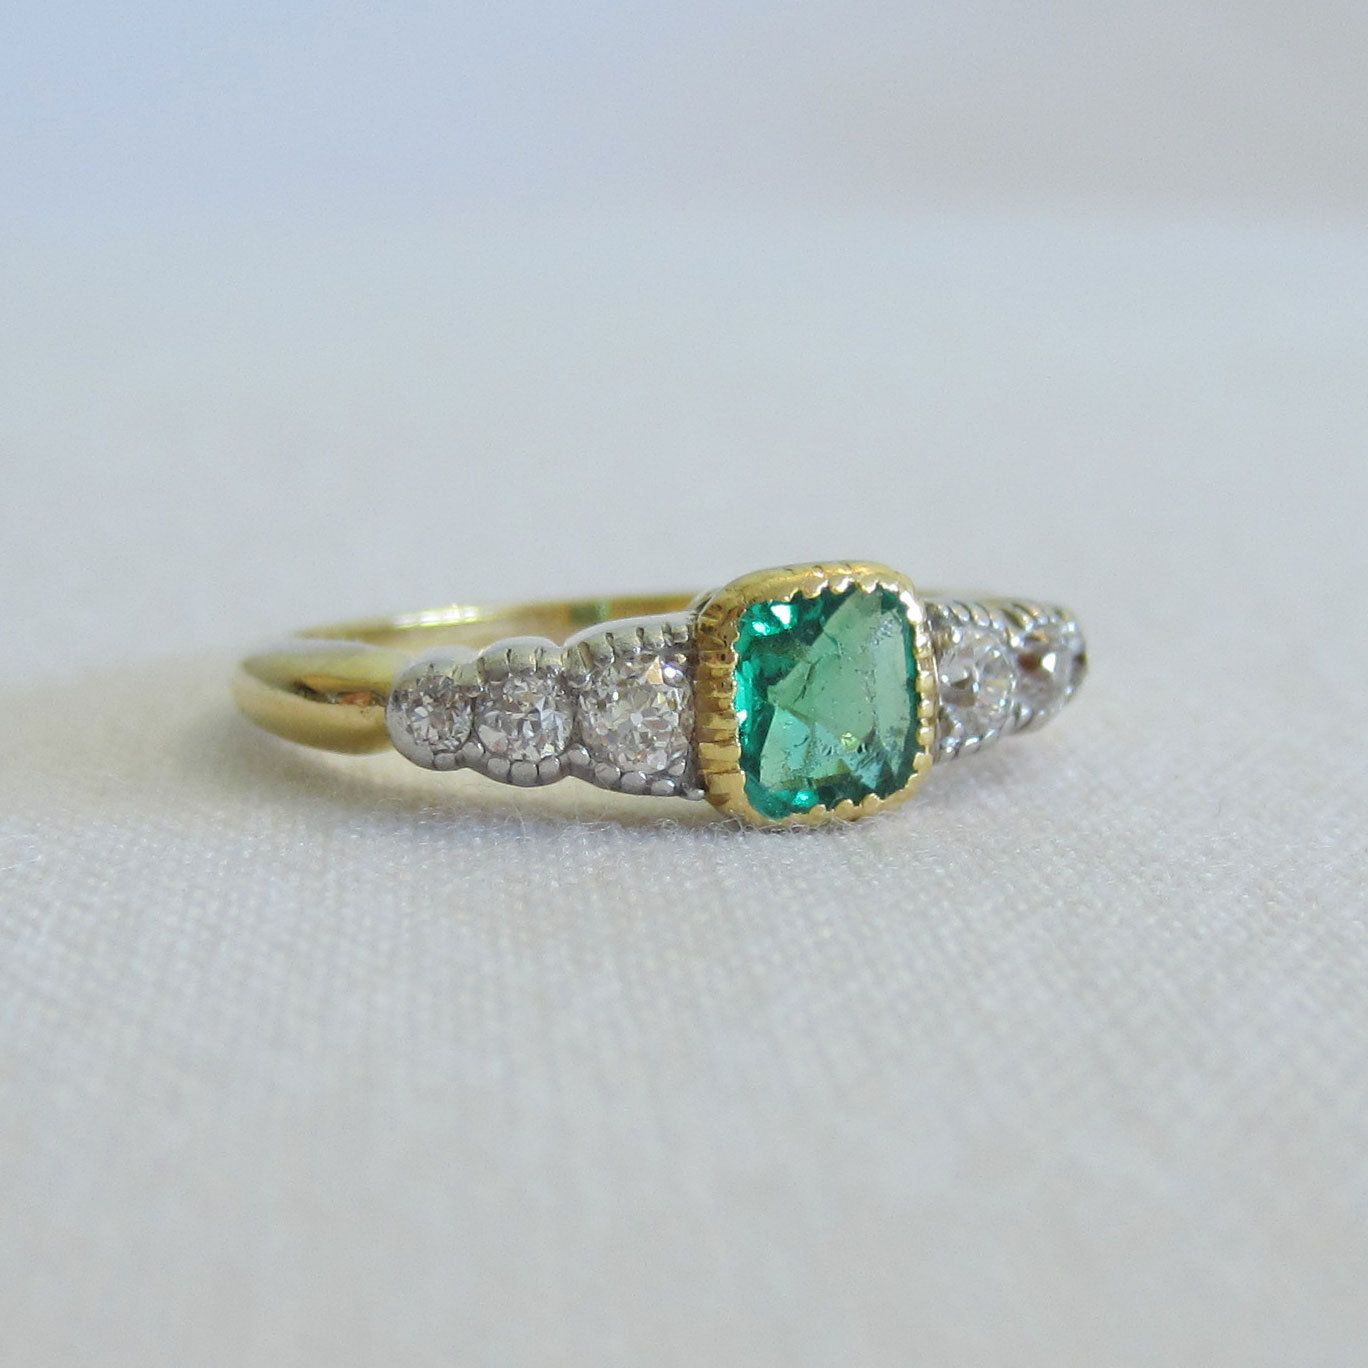 Antique Emerald and Diamond Engagement Ring. Beautiful